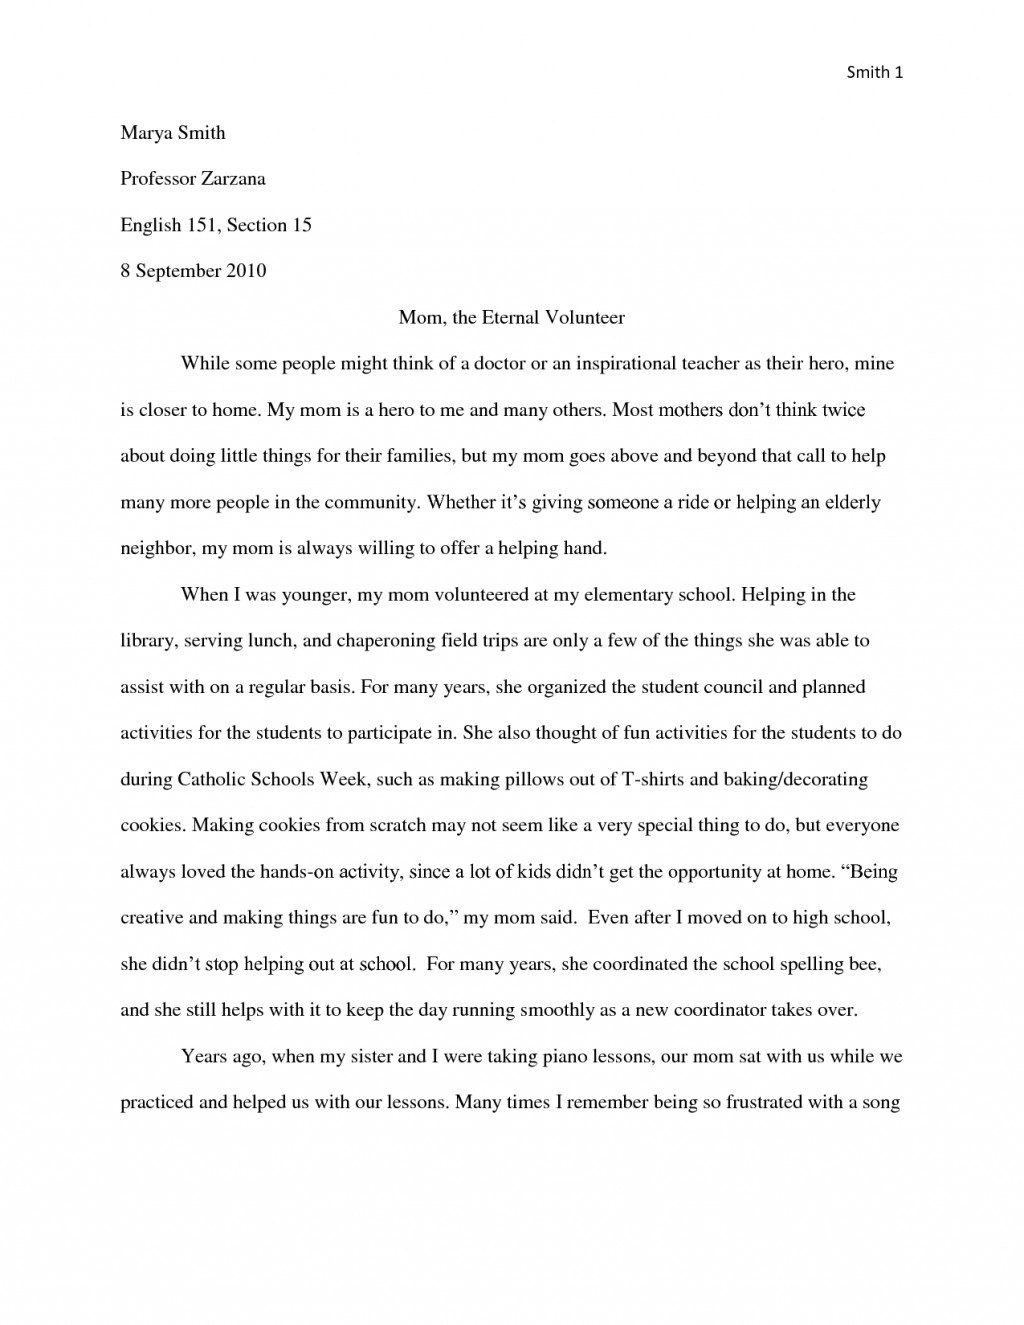 012 Essay Example My Hero Mom Essays Template Heroism About Moment Of Pain And Regret Short Descriptive Expository Role Model Examples An Narrative Tribute Samples Wondrous In History With Outline Favourite Salman Khan English National Large